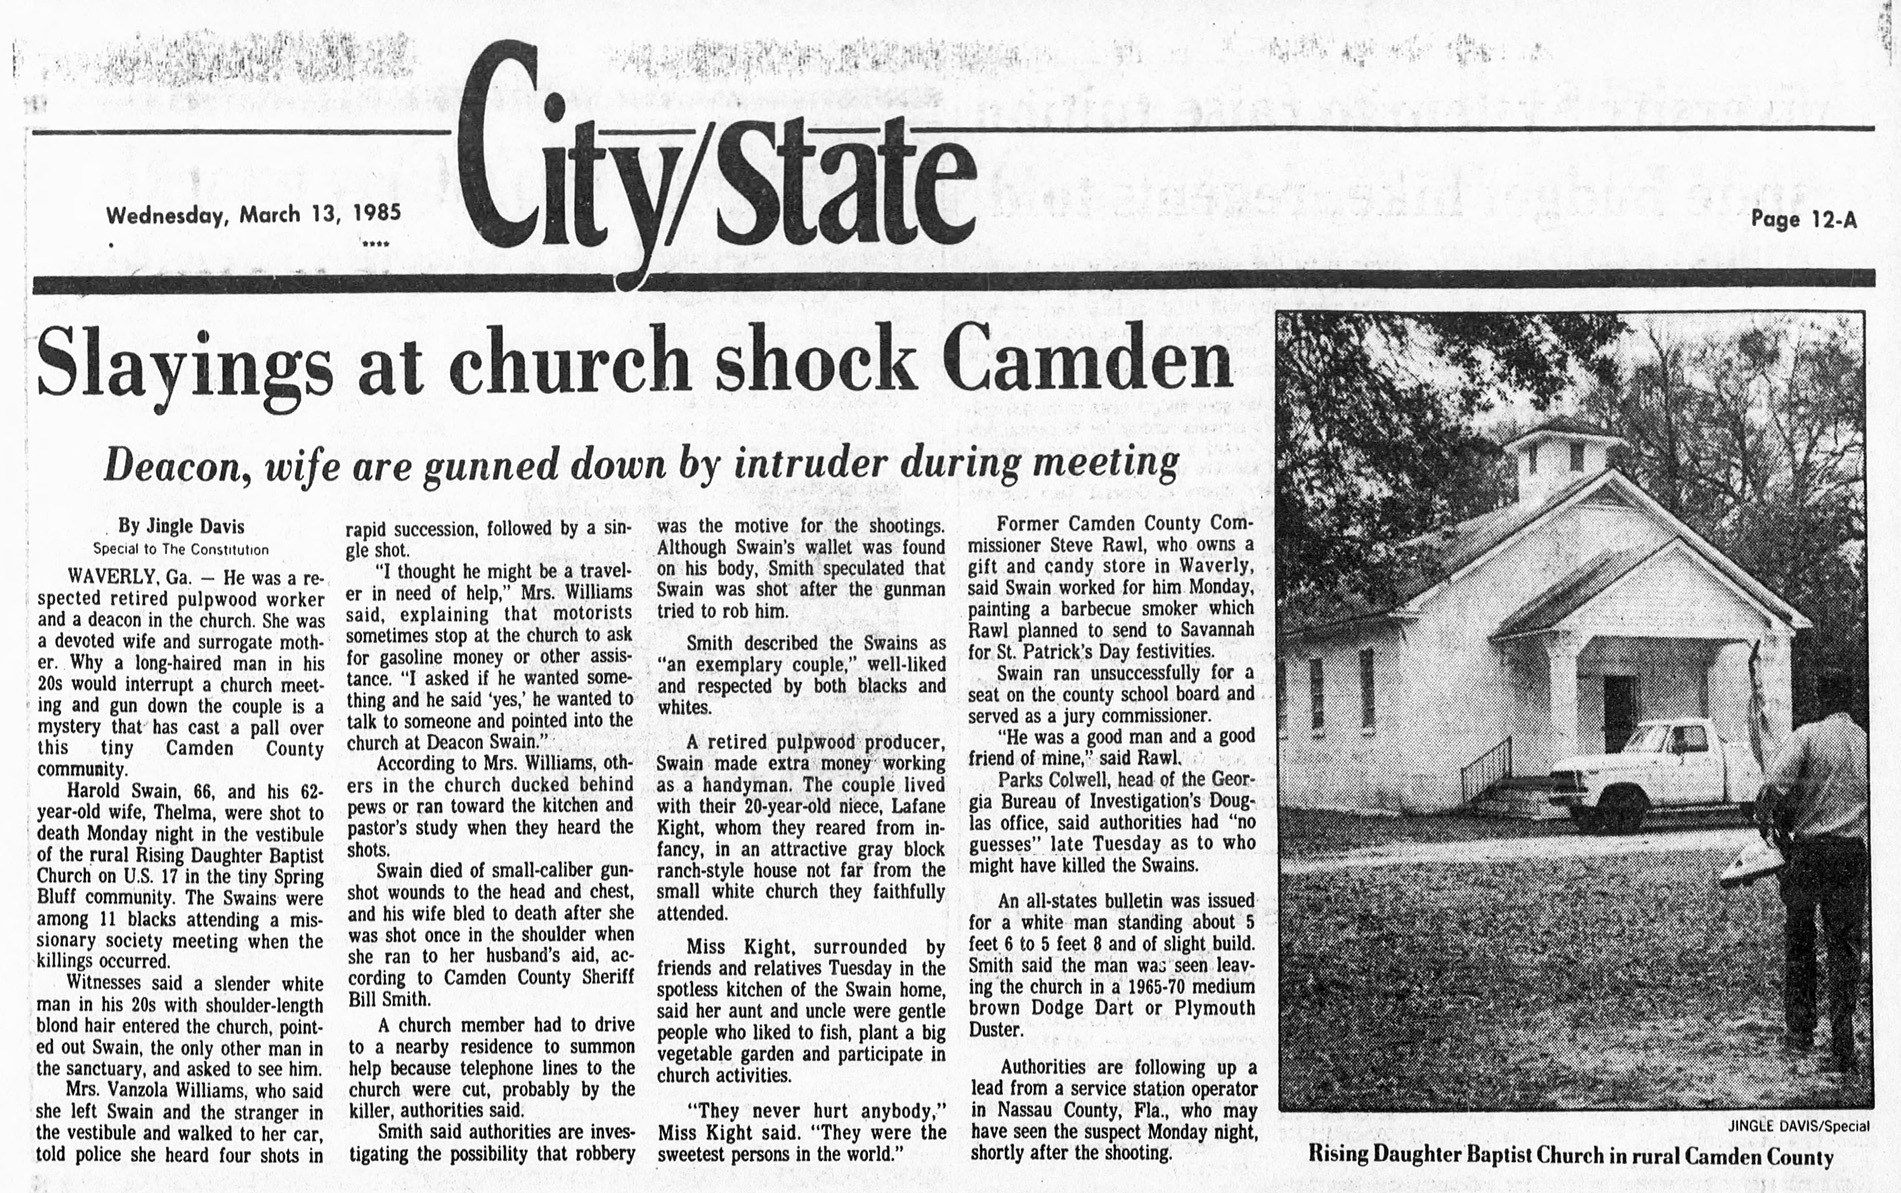 The Atlanta Constitution covered the murders in 1985.